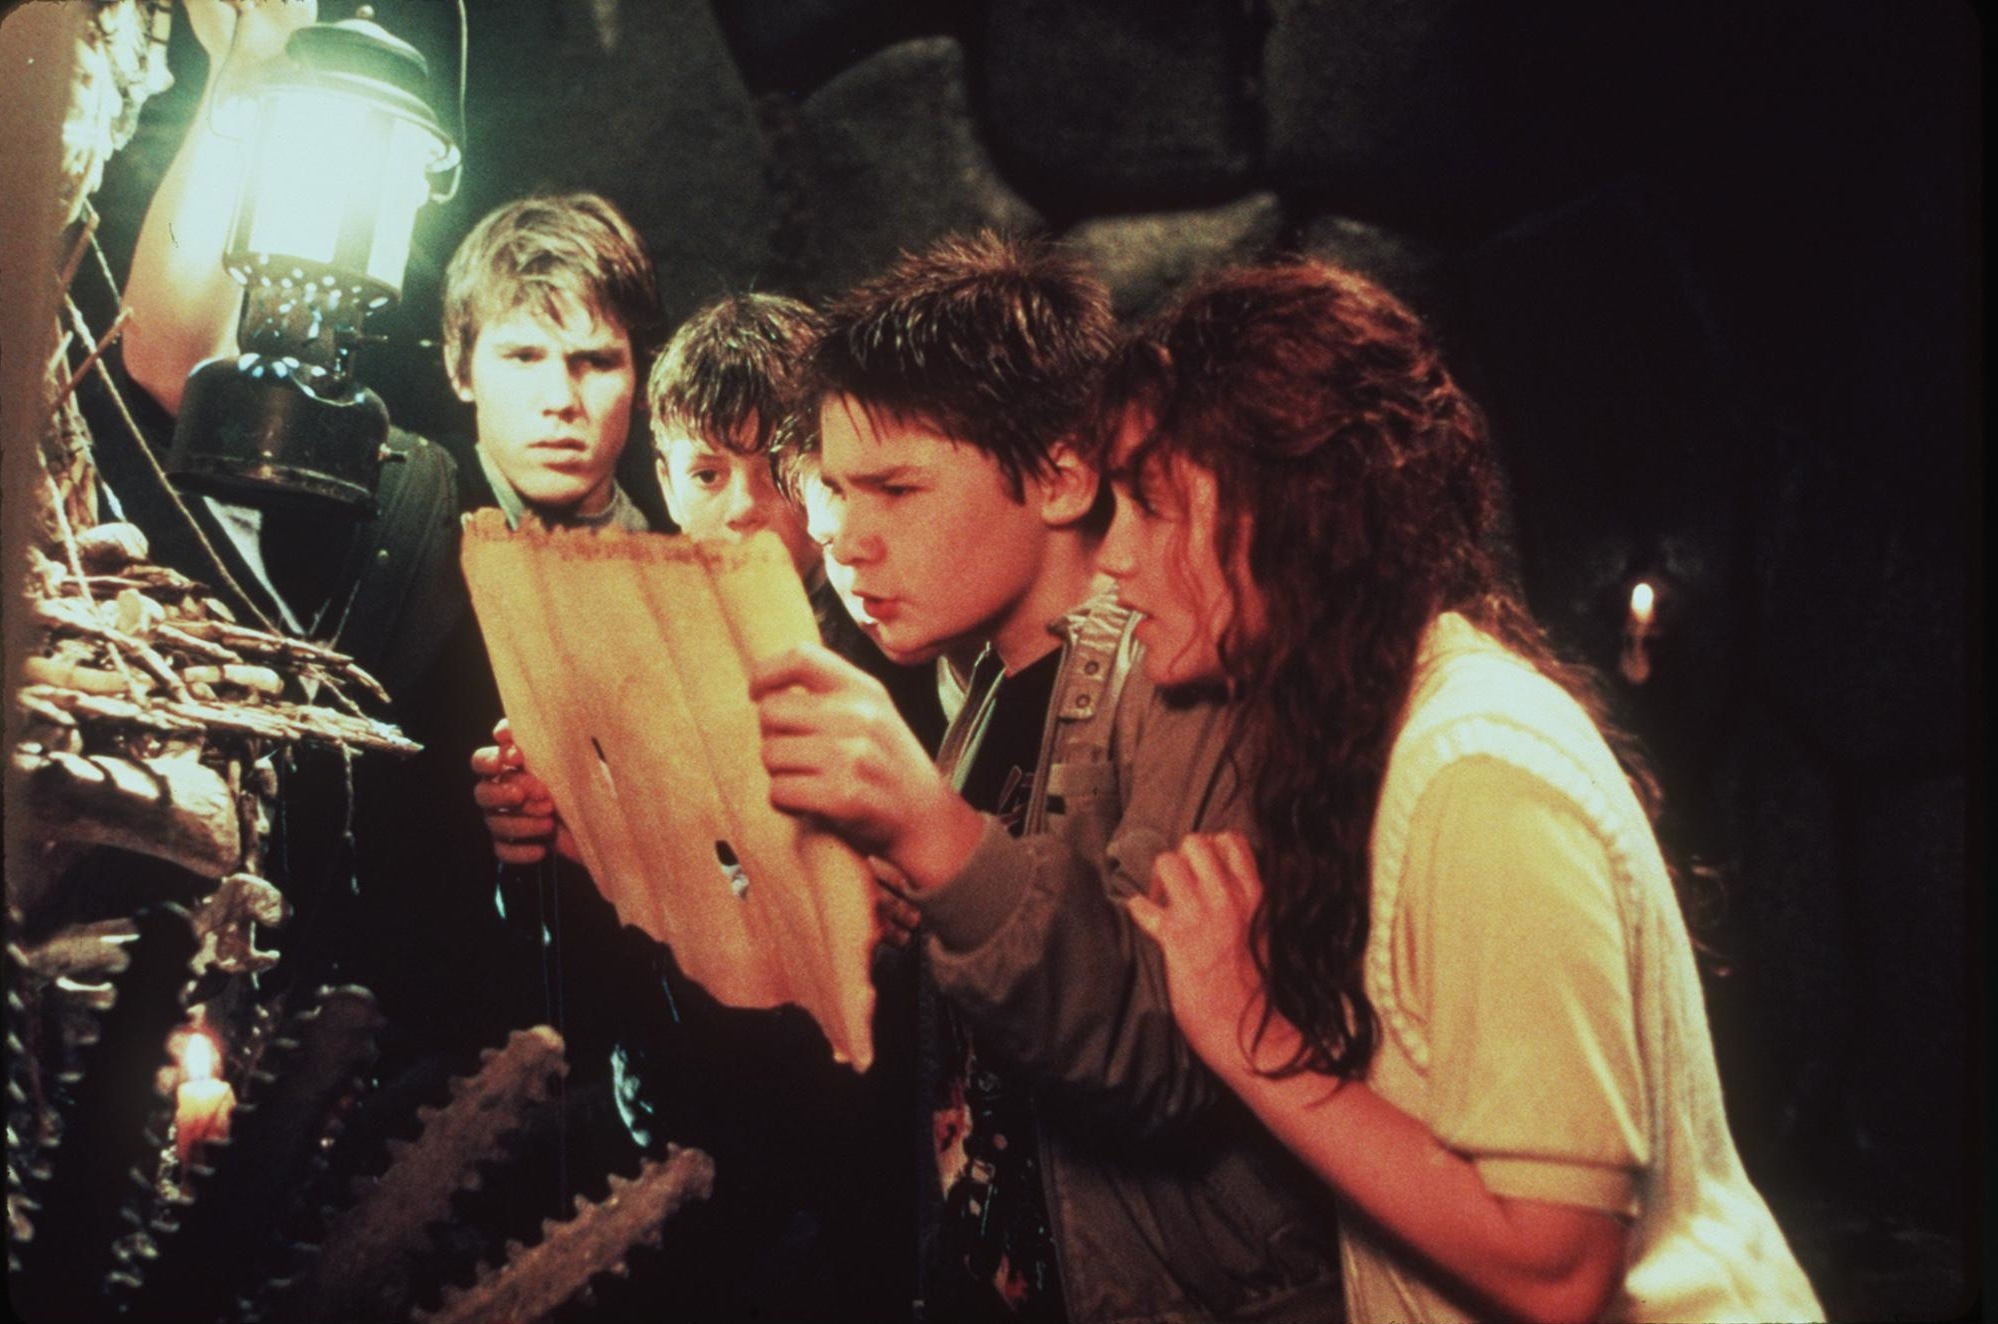 Sean Astin, Corey Feldman, Josh Brolin, and Kerri Green in The Goonies (1985)